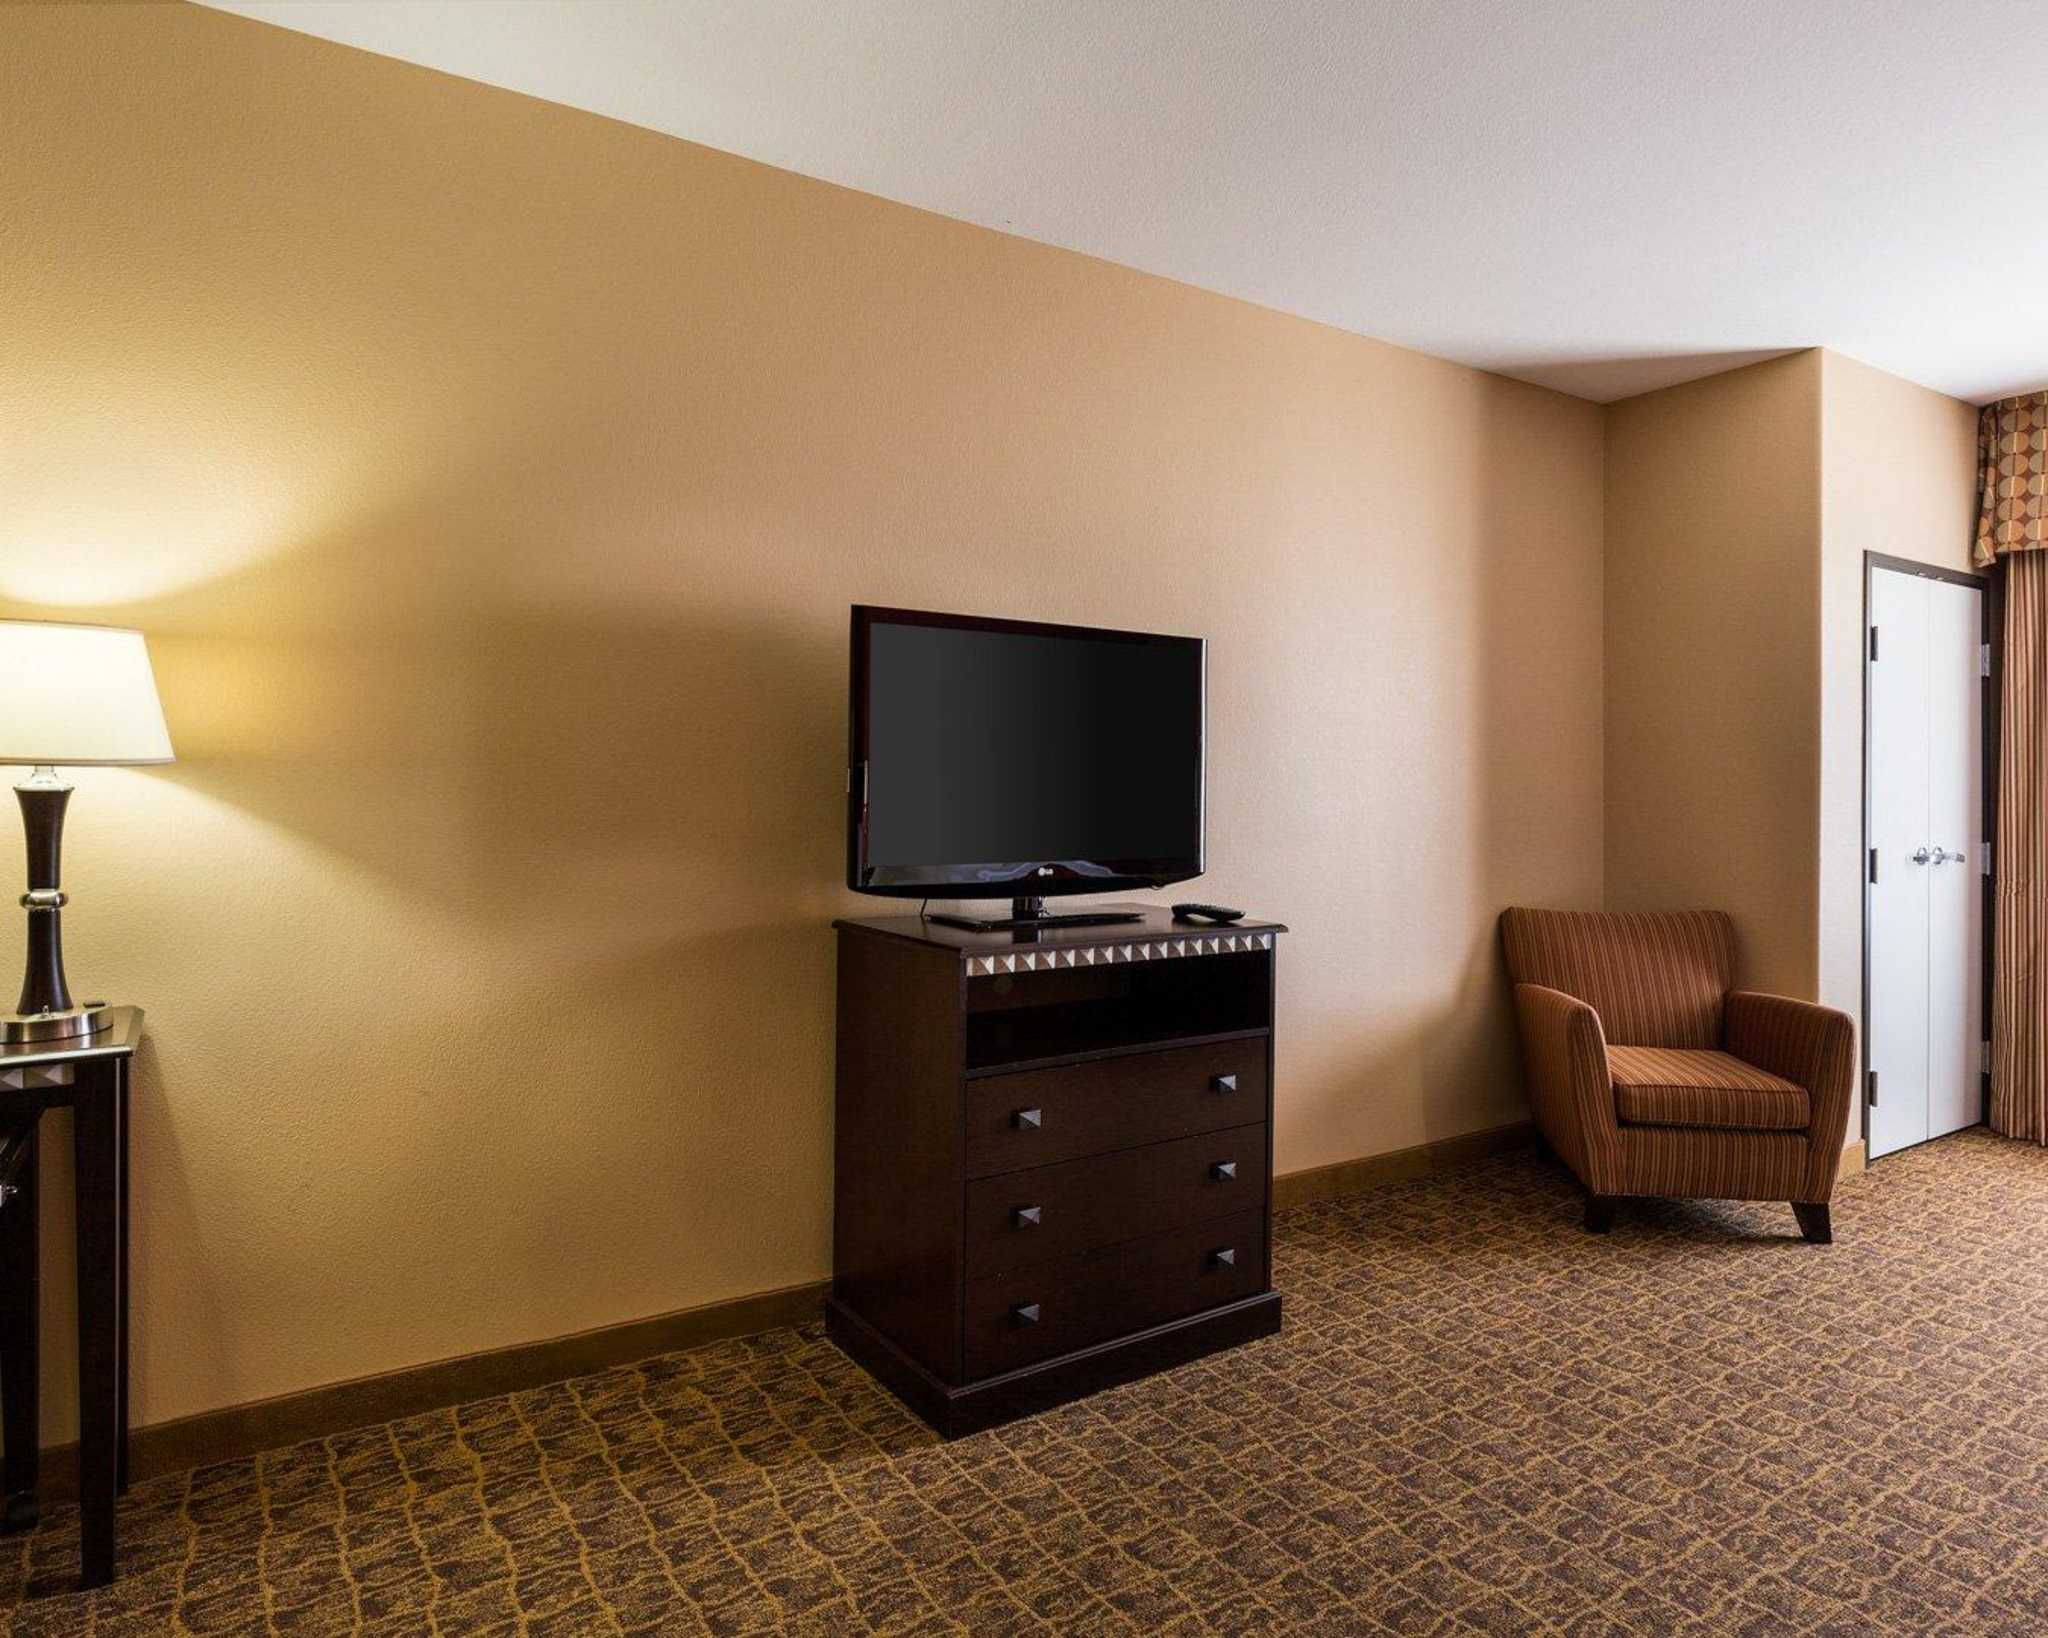 Comfort Suites Pearland - South Houston image 14